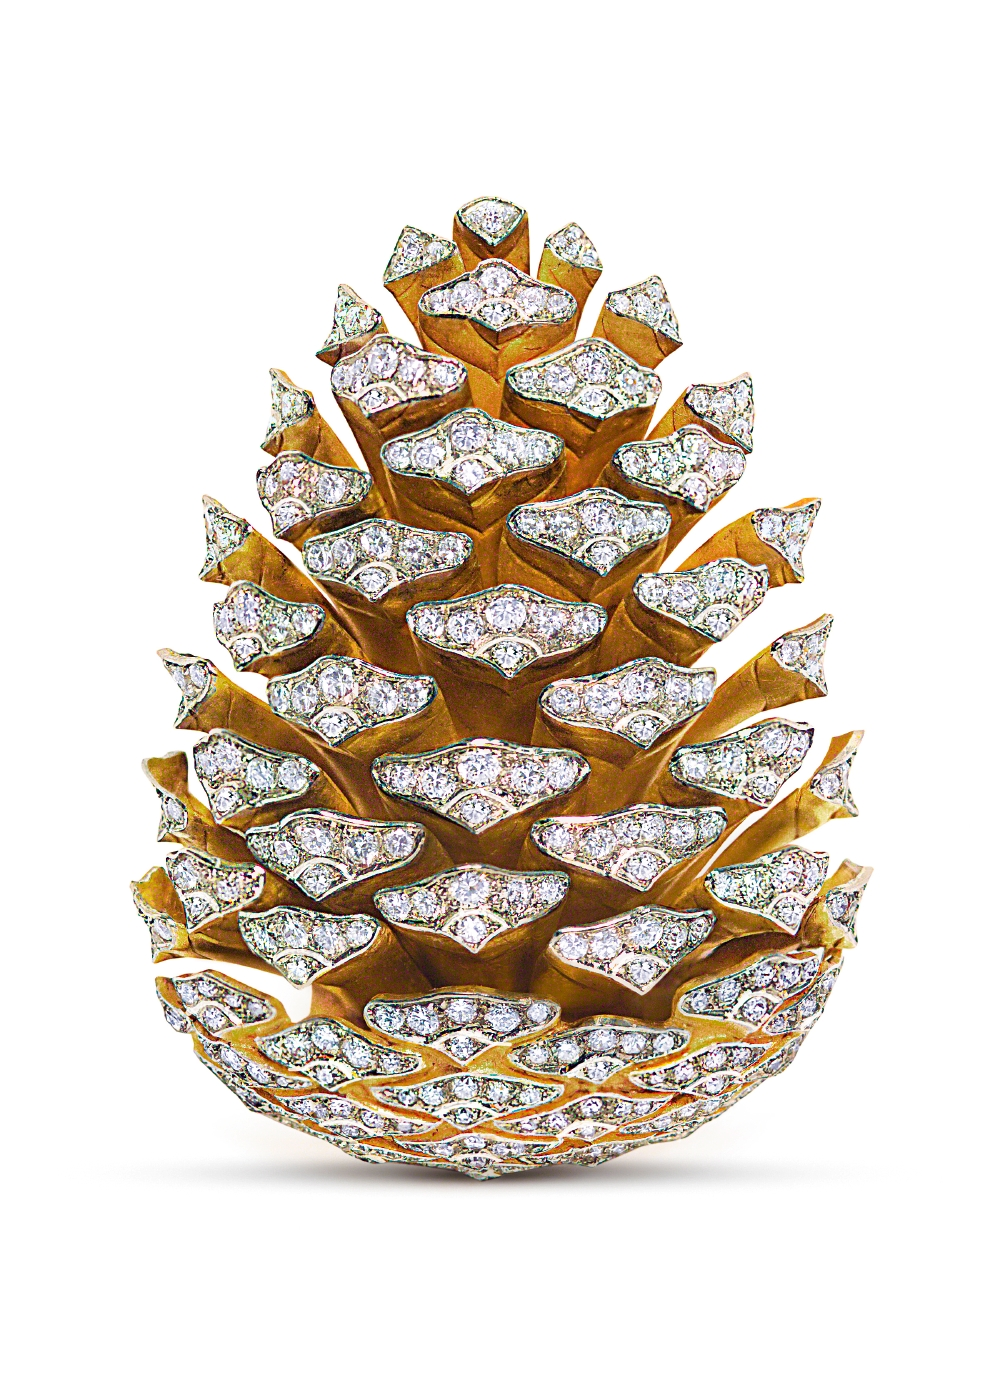 Pinecone brooch